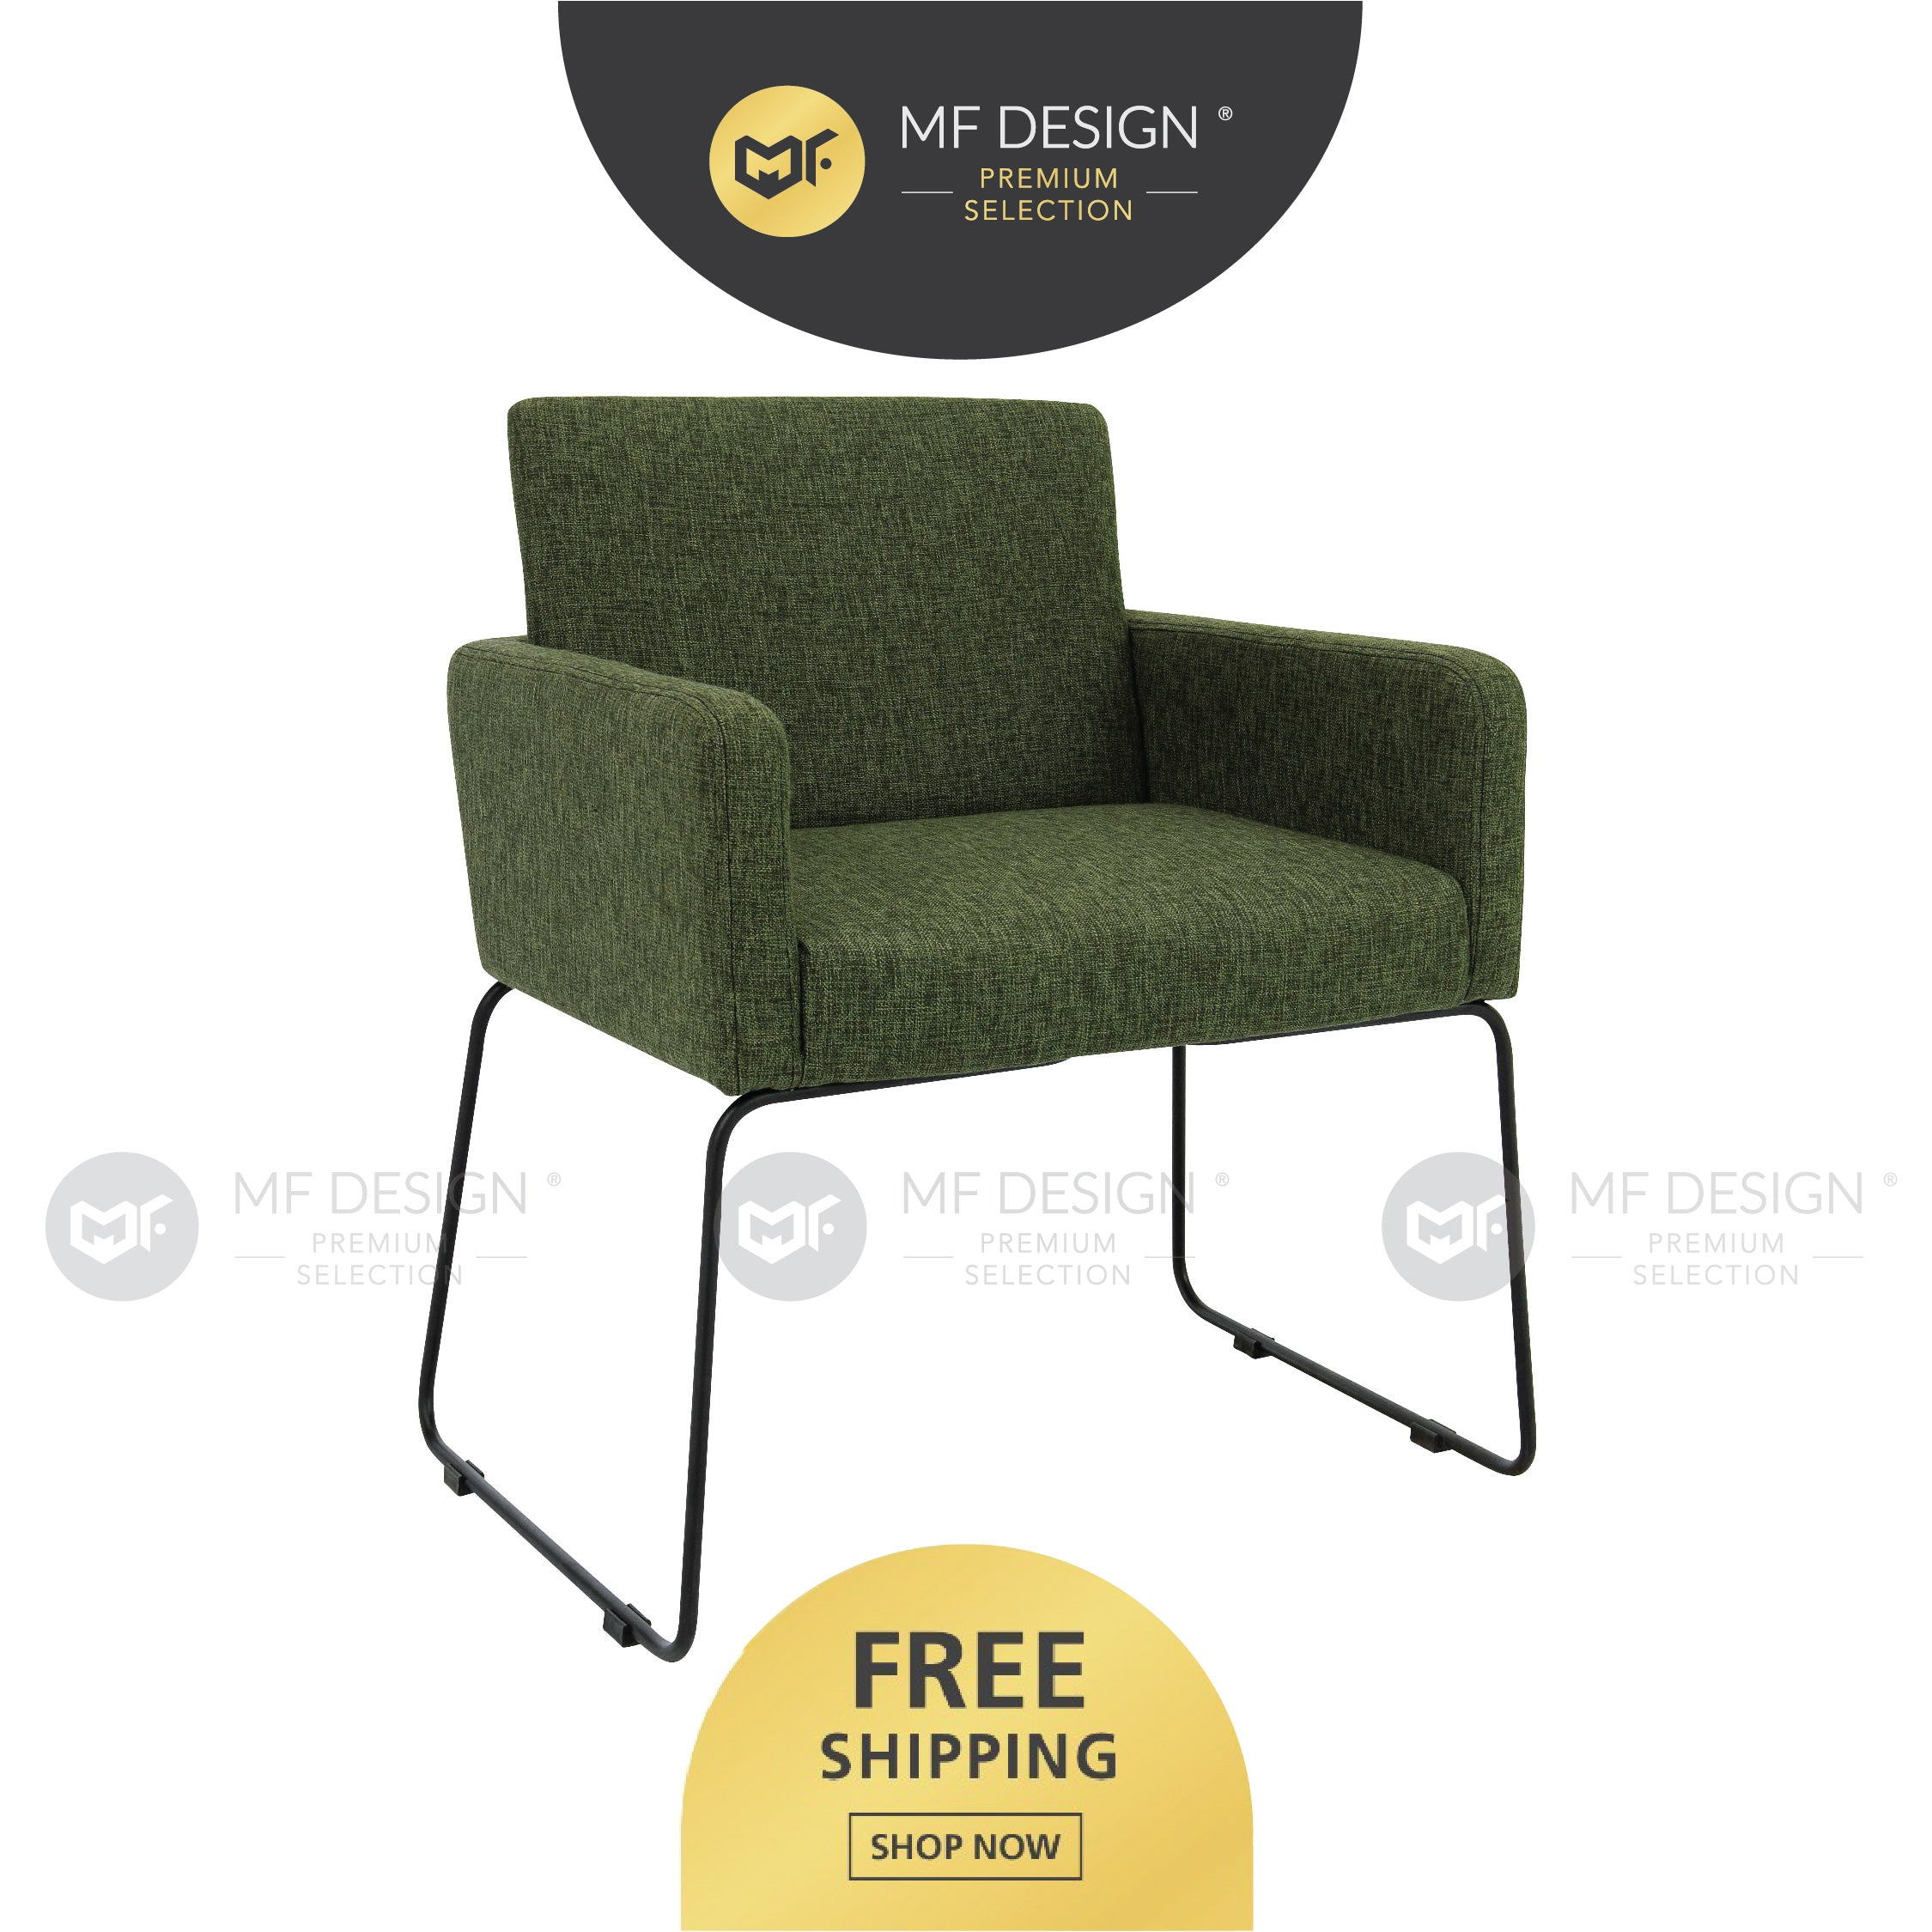 MFD Premium Derrick Dining Chair / kerusi / chair